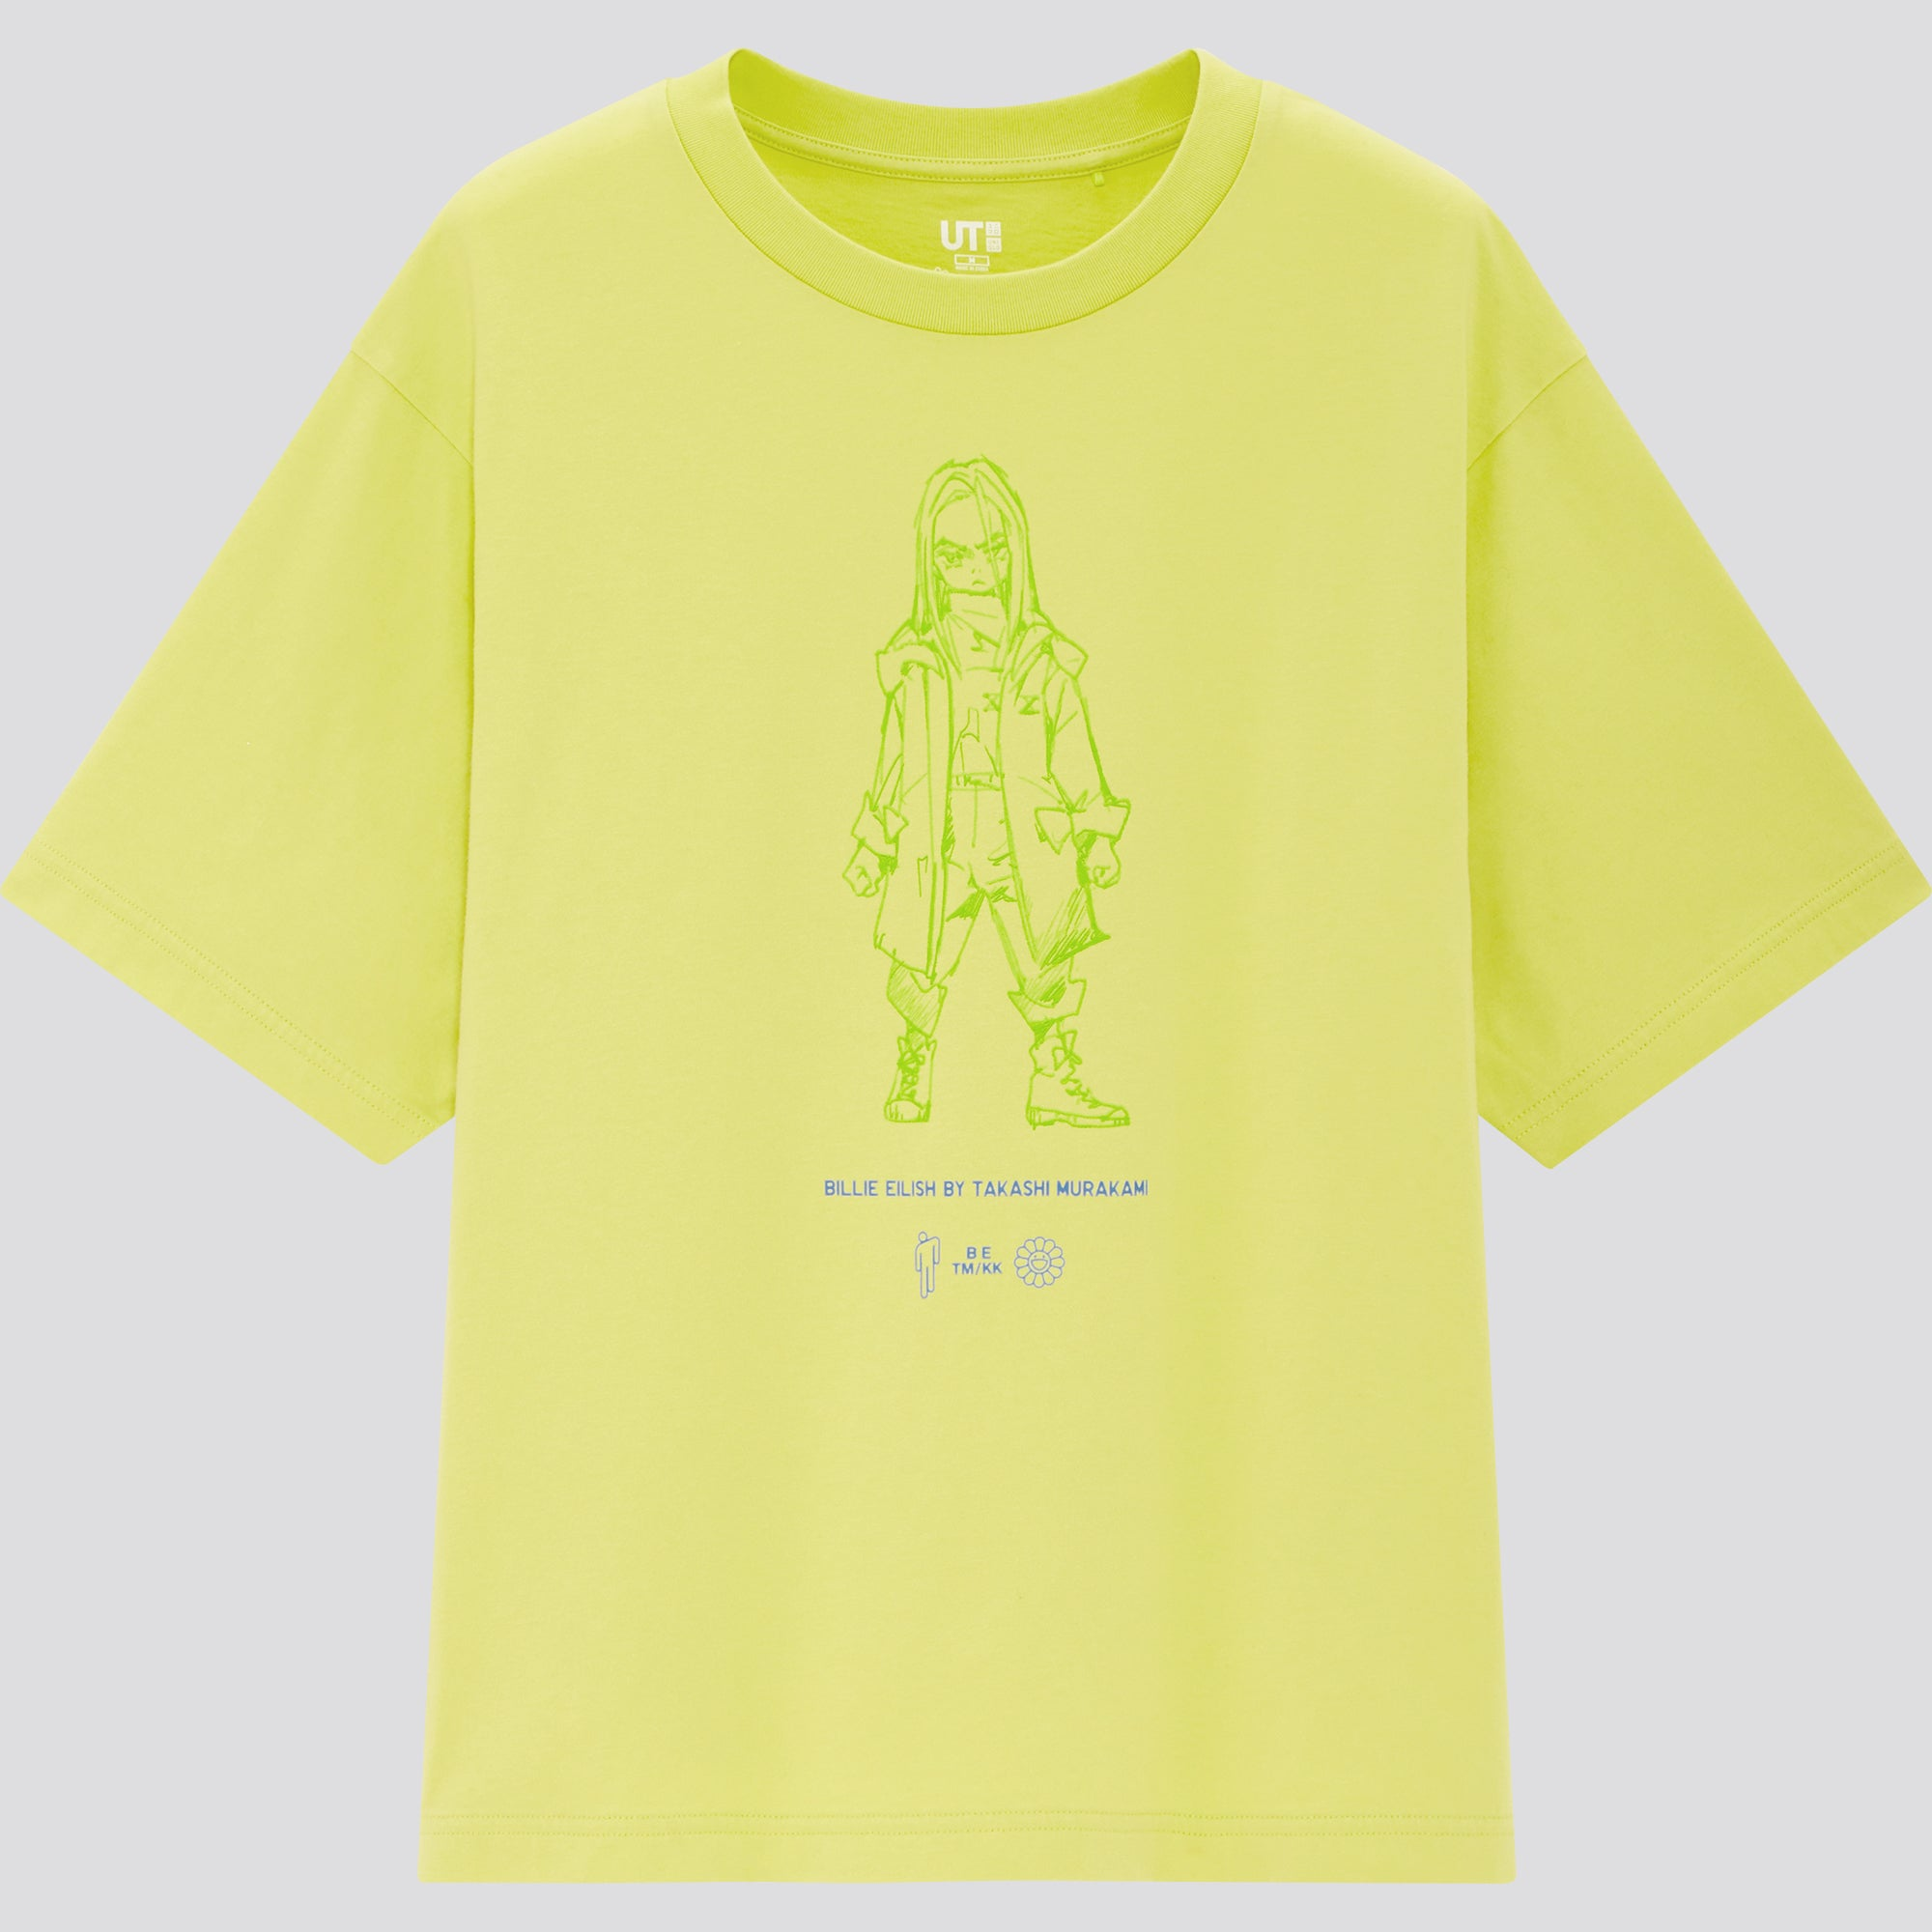 Billie Eilish by Takashi Murakami UT Short-Sleeve Oversized Graphic T-Shirt